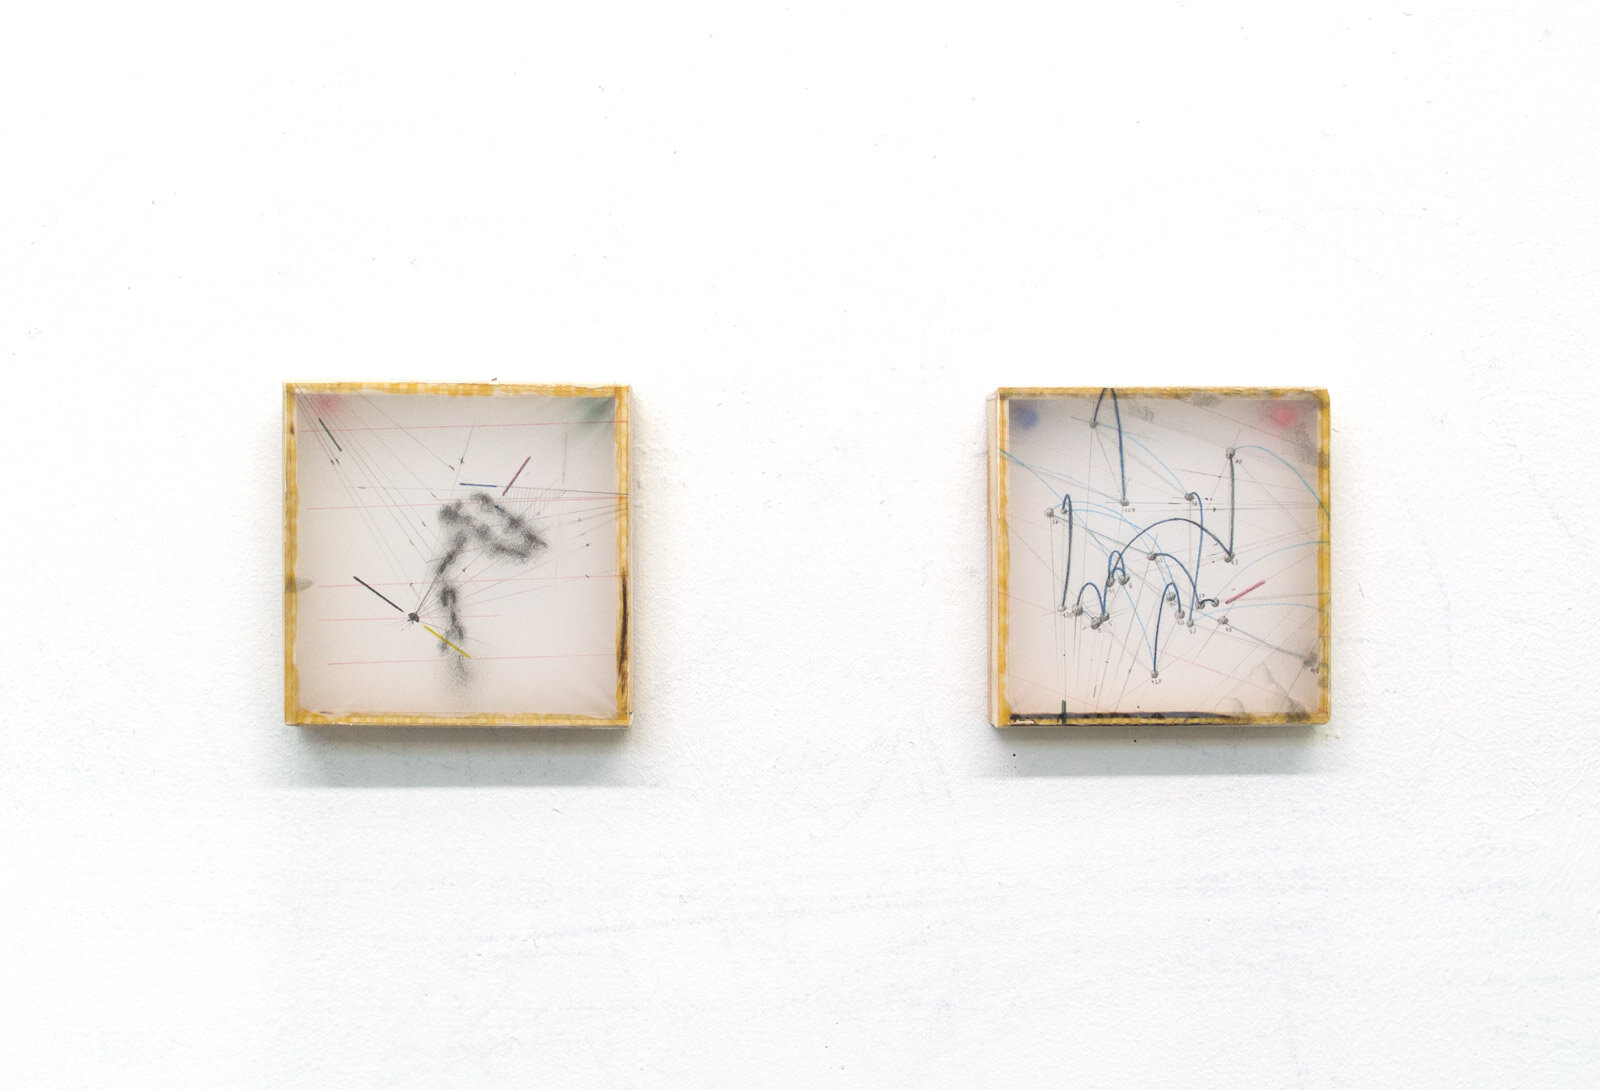 "B5.1.1P-2P [trajectory positives]  (2018) 4.5"" x 4.5"" x 0.8"" each, graphite and colored pencil on tracing paper stretched on wood frame"